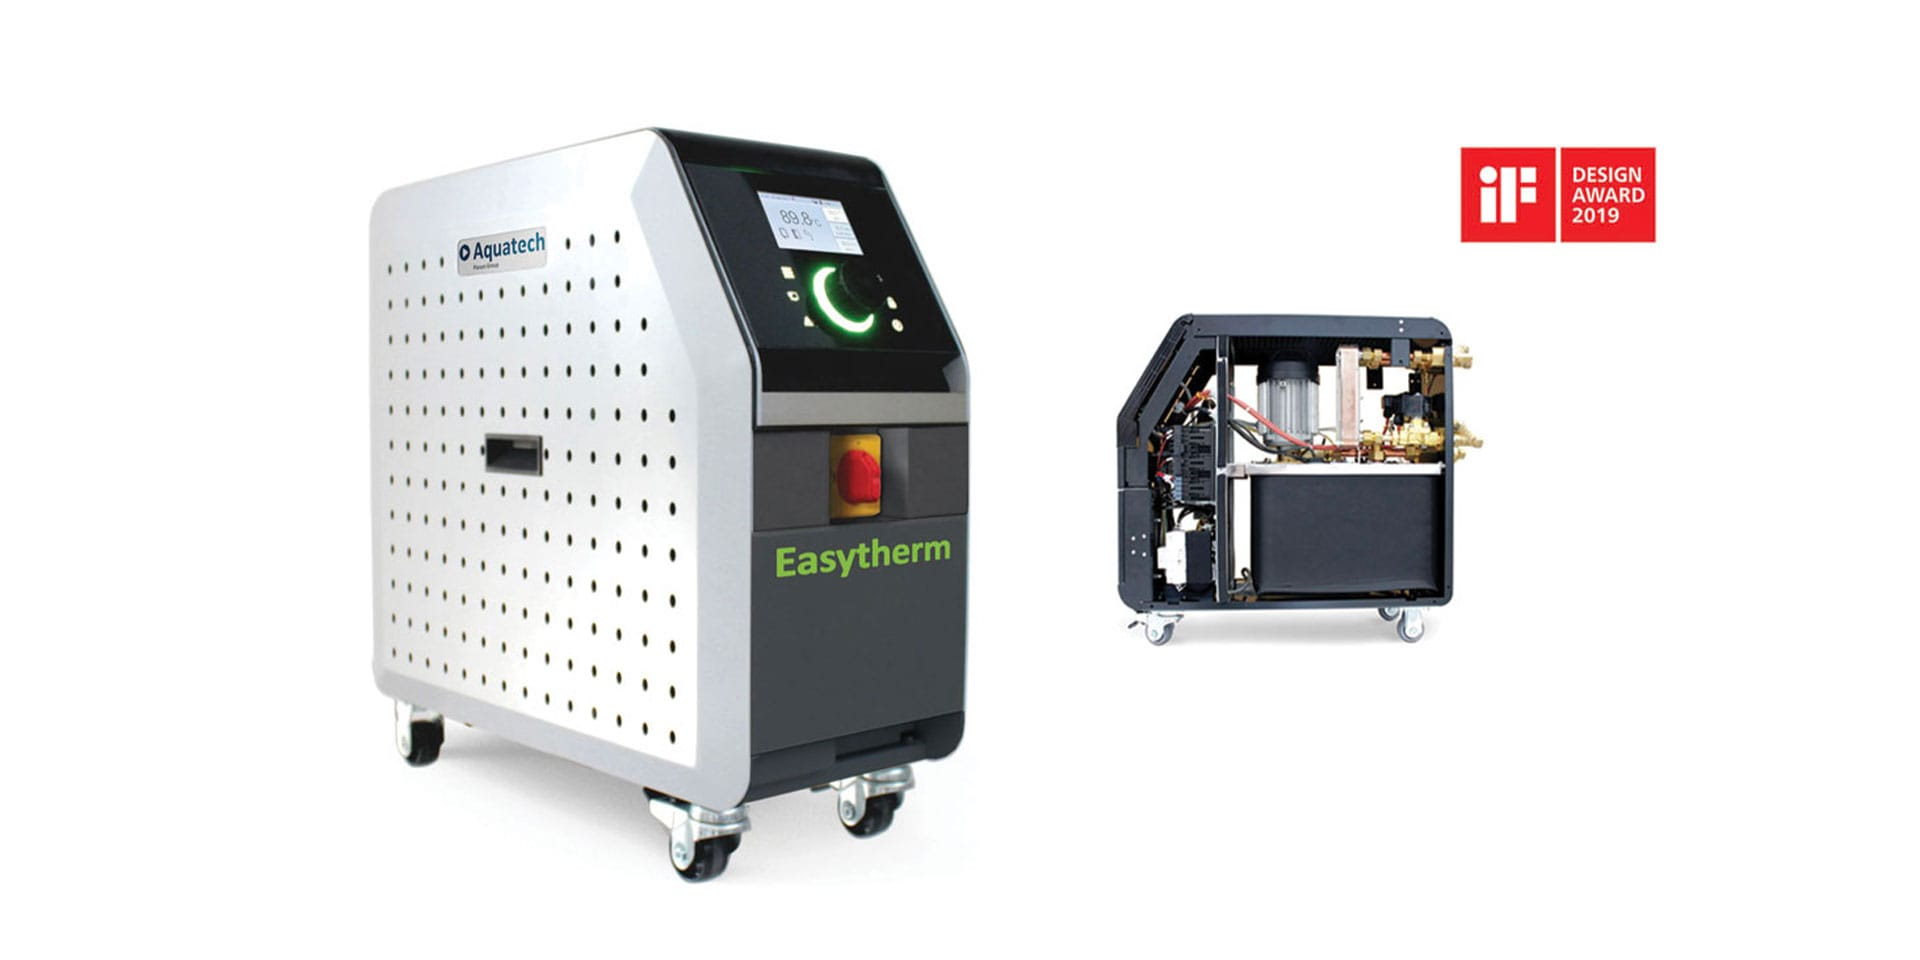 Easytherm, the evolution in the industrial field